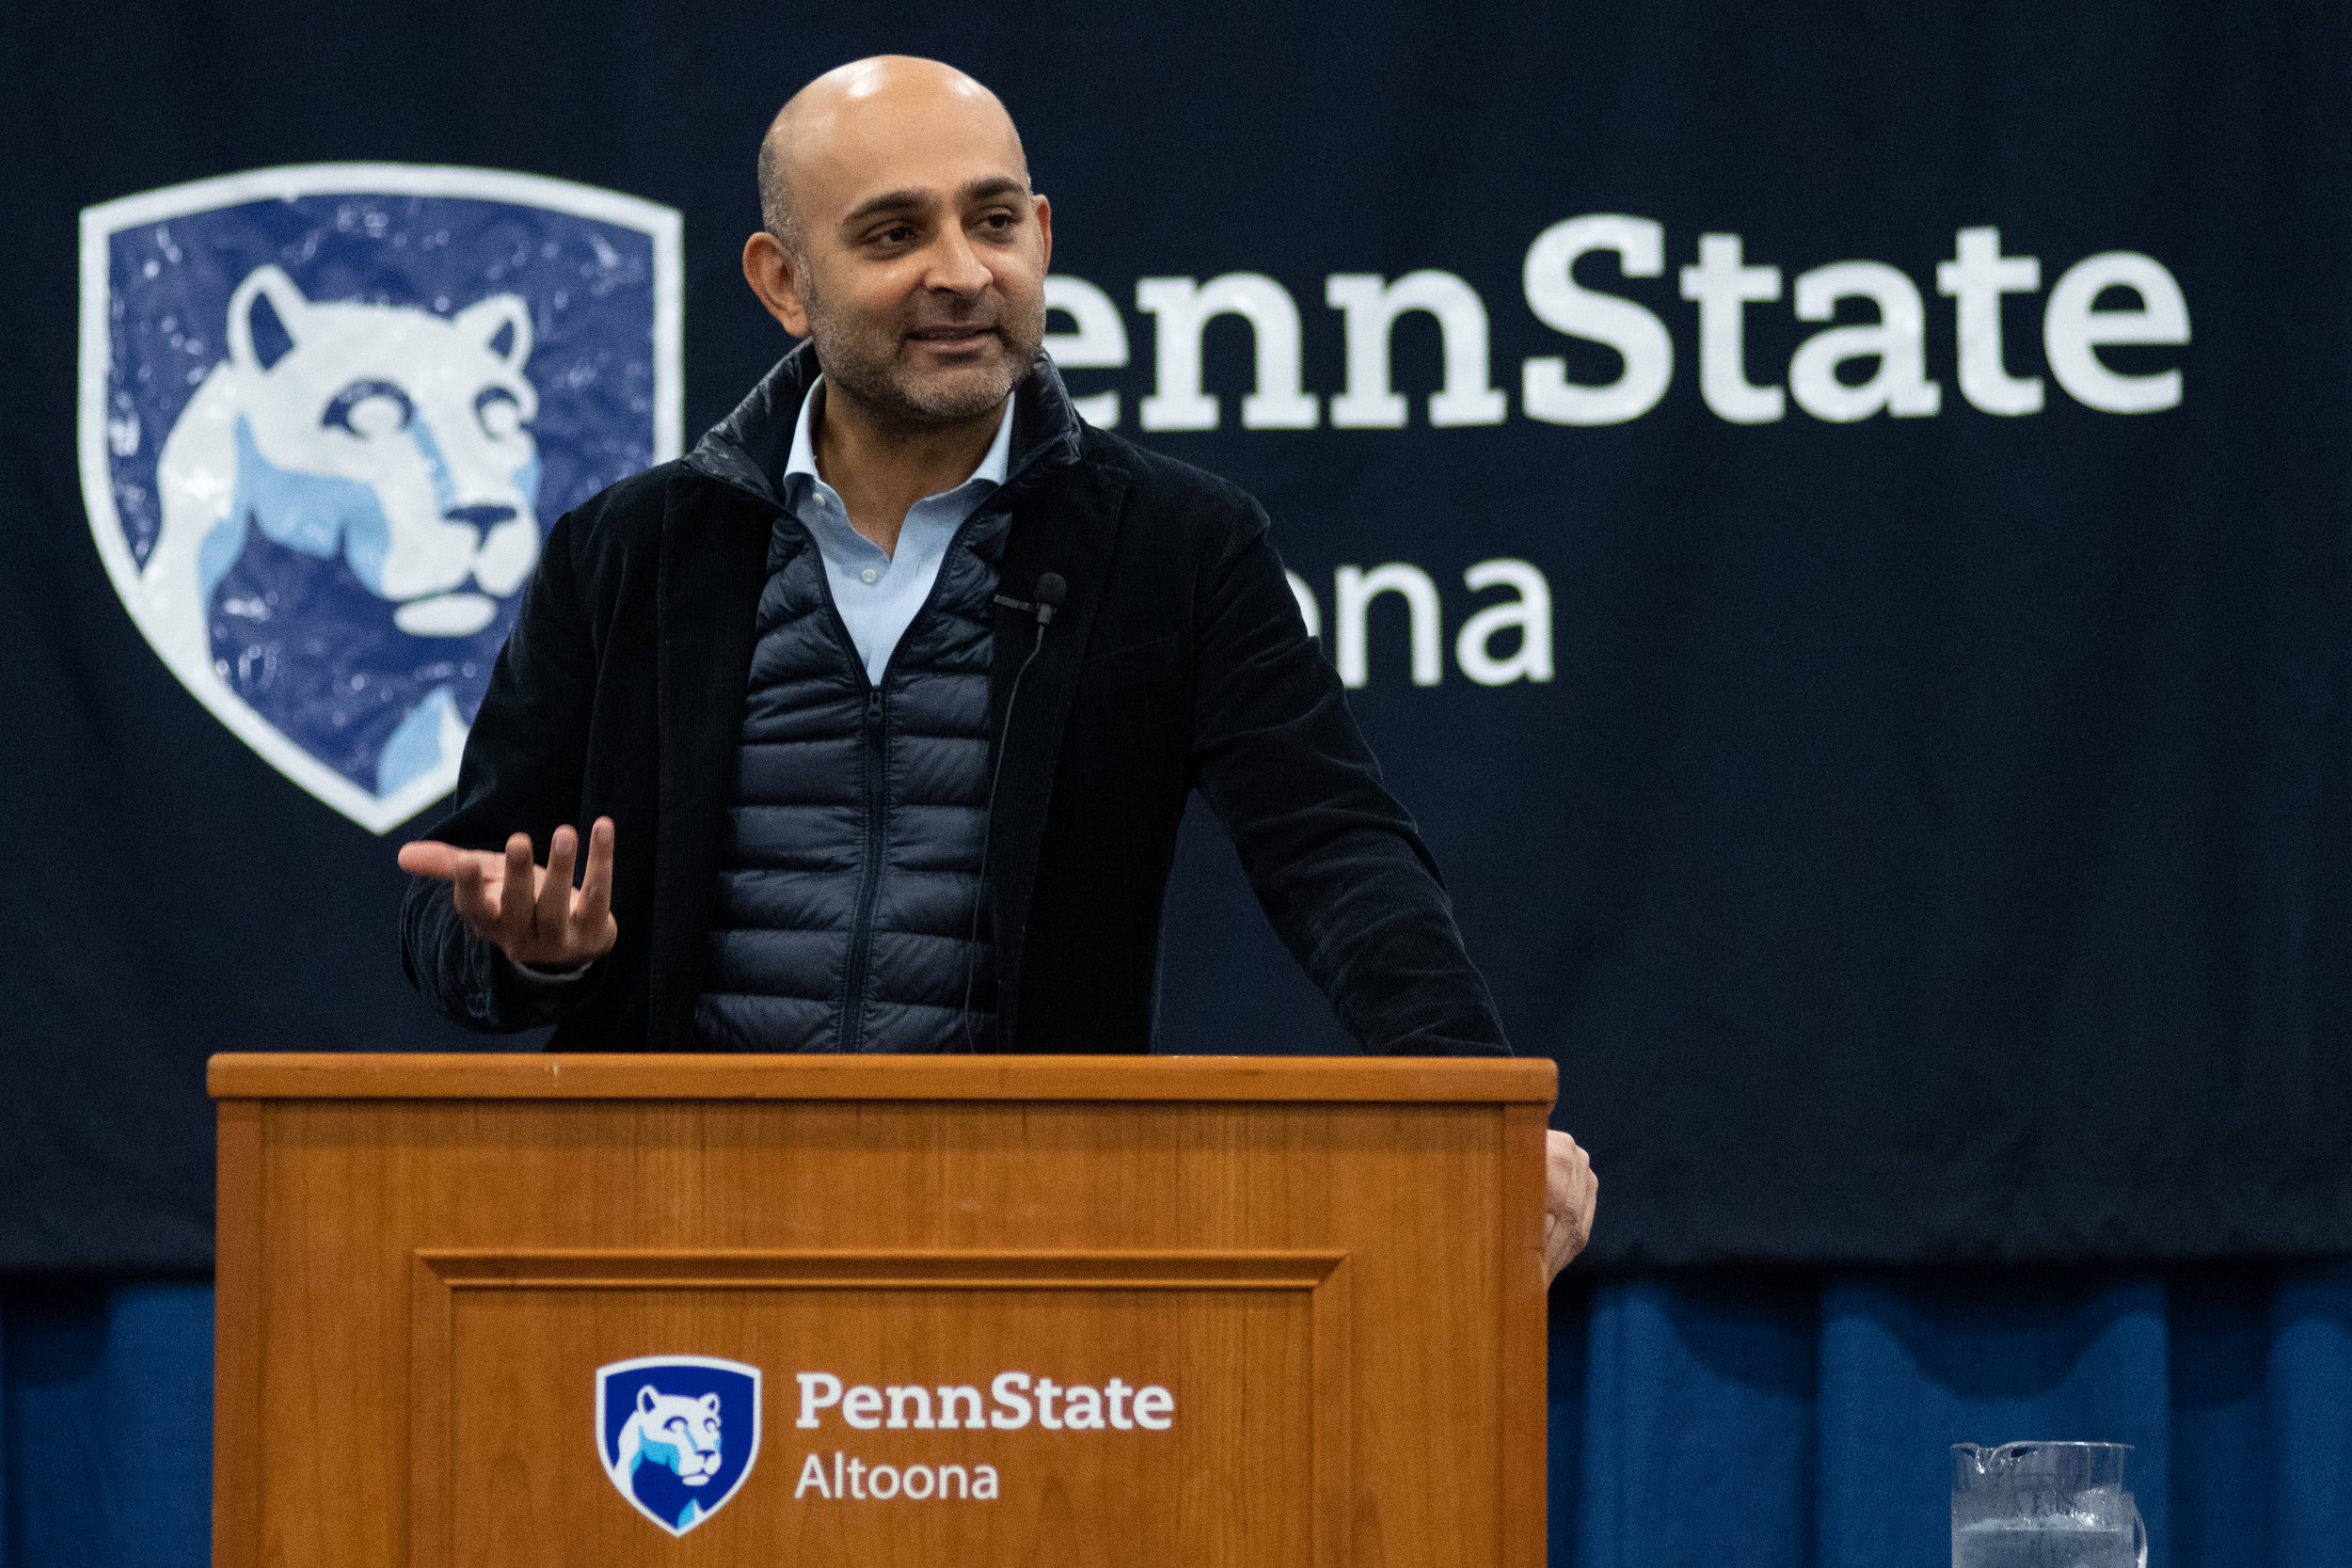 Photo by: Noah Riffe - Author Mohsin Hamid speaks on stage at Penn State Altoona's Adler Arena on September 25th, 2018. - Photo By: Noah Riffe